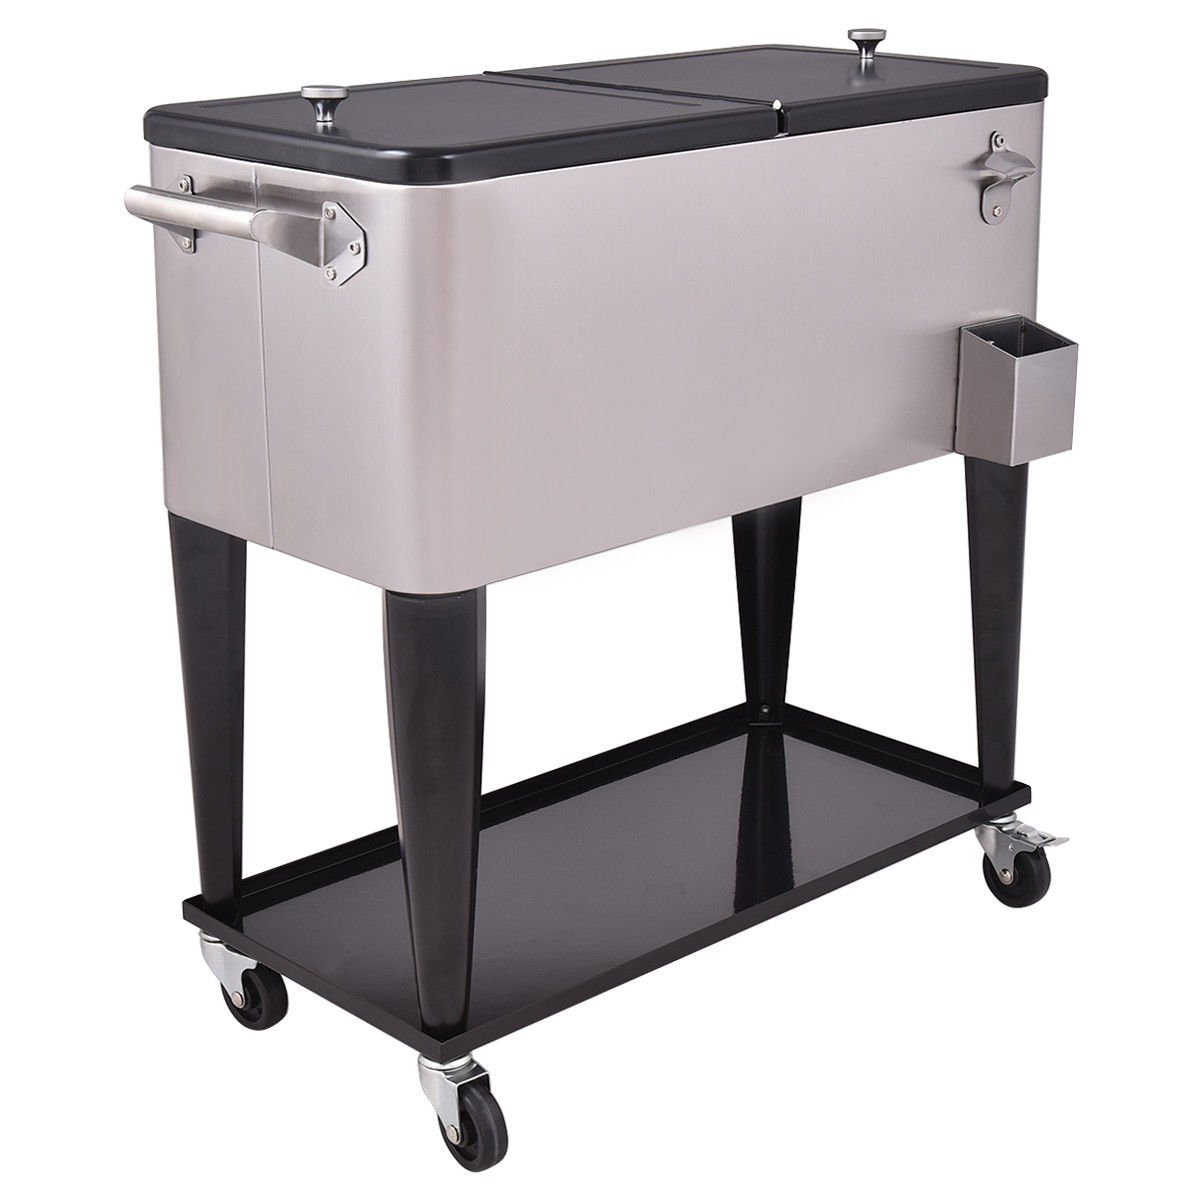 GHP 80-Quart Capacity Black & Silver Stainless Steel Rolling Beverage Cooler Chest